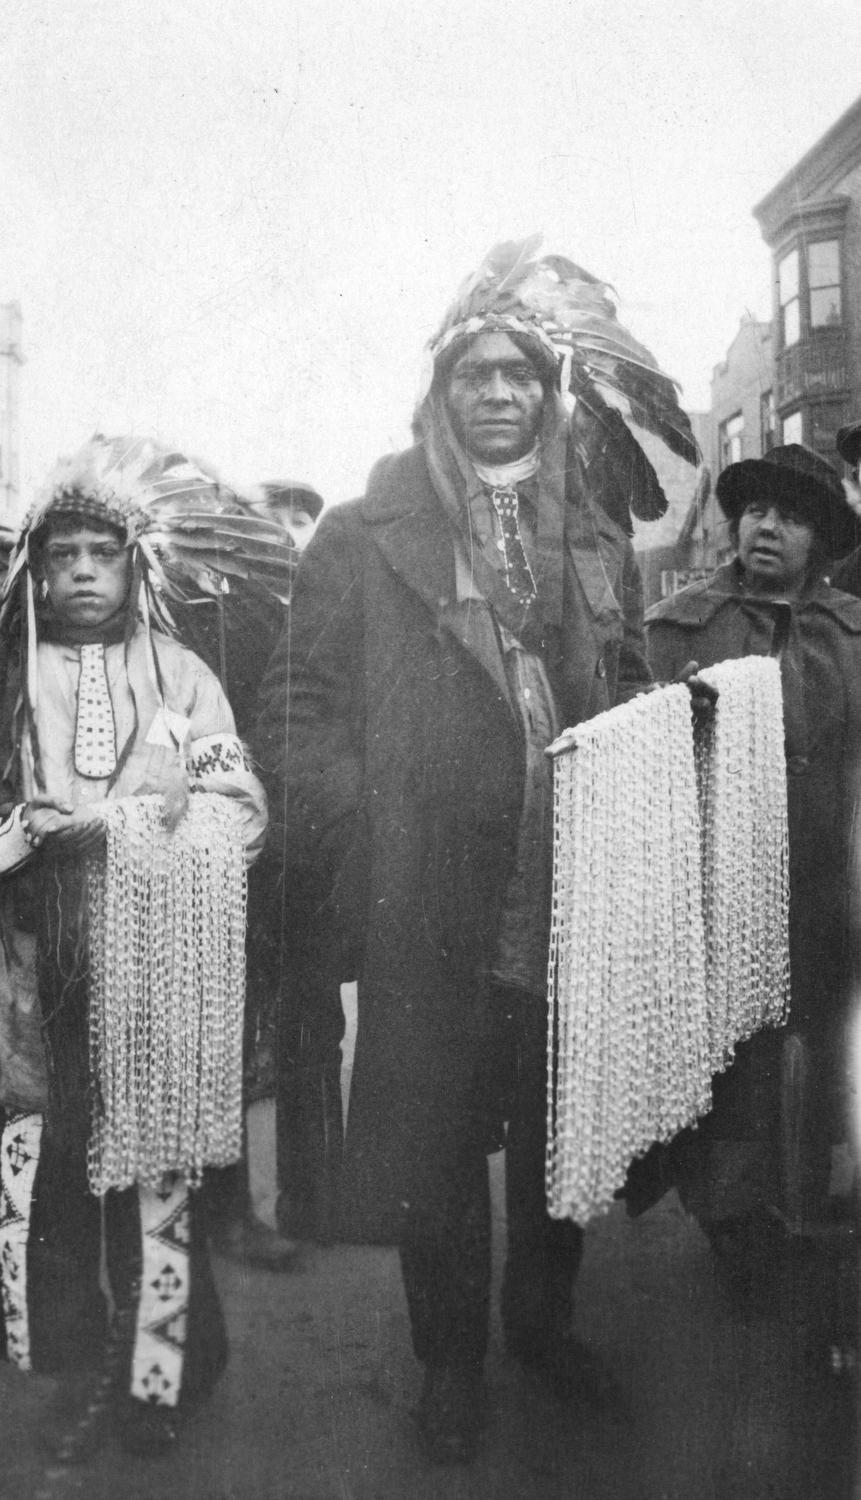 American Indians selling beads